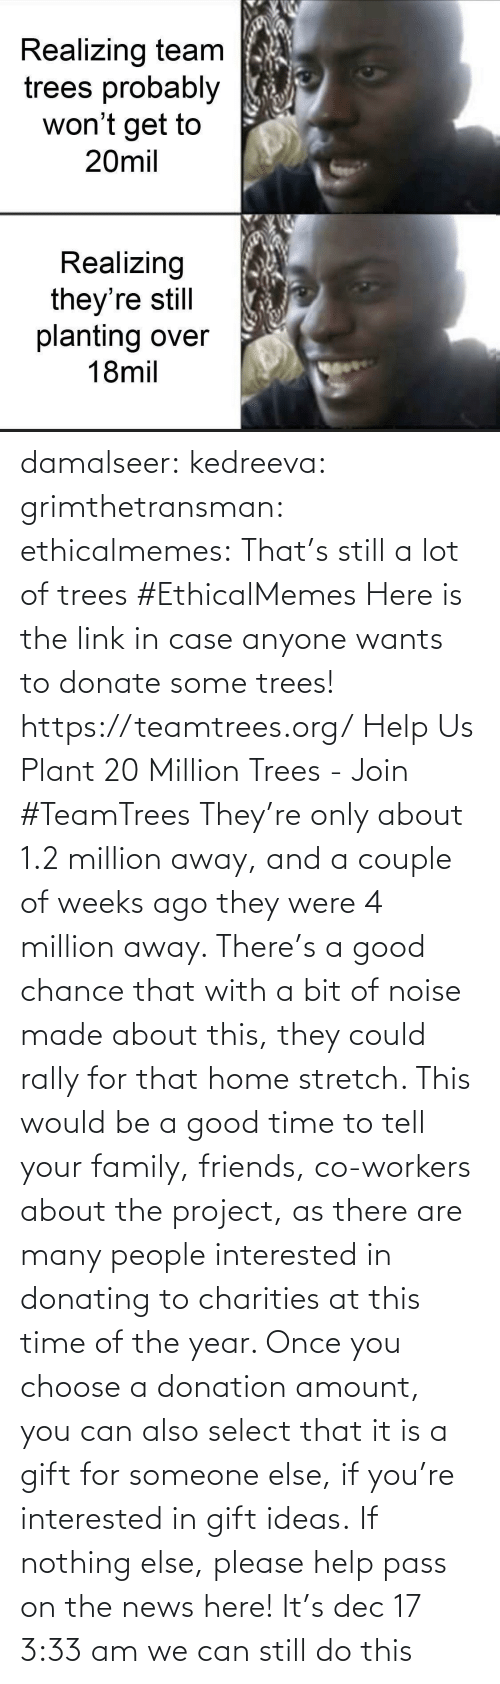 plants: Realizing team  trees probably  won't get to  20mil  Realizing  they're still  planting over  18mil damalseer:  kedreeva: grimthetransman:  ethicalmemes:  That's still a lot of trees #EthicalMemes   Here is the link in case anyone wants to donate some trees!  https://teamtrees.org/ Help Us Plant 20 Million Trees - Join #TeamTrees  They're only about 1.2 million away, and a couple of weeks ago they were 4 million away. There's a good chance that with a bit of noise made about this, they could rally for that home stretch. This would be a good time to tell your family, friends, co-workers about the project, as there are many people interested in donating to charities at this time of the year. Once you choose a donation amount, you can also select that it is a gift for someone else, if you're interested in gift ideas. If nothing else, please help pass on the news here!    It's dec 17 3:33 am we can still do this